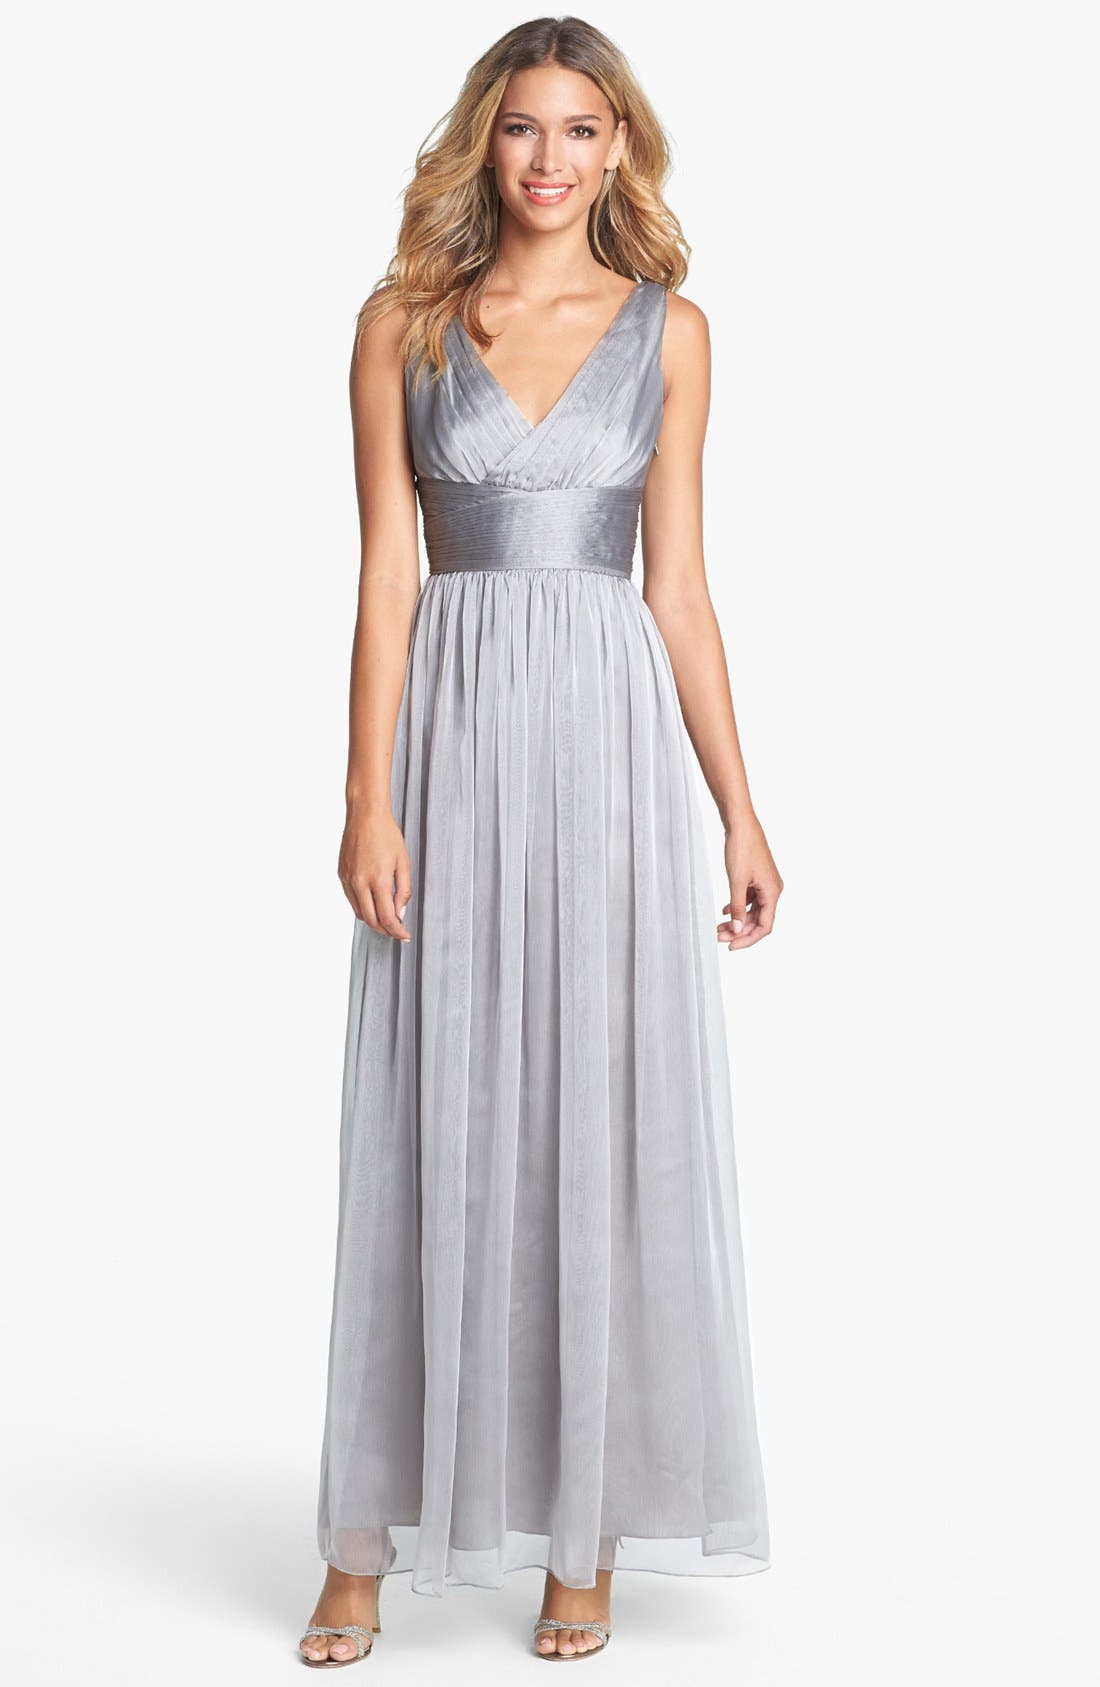 Main Image - Monique Lhuillier Bridesmaids Sleeveless Ruched Chiffon Dress (Nordstrom Exclusive)